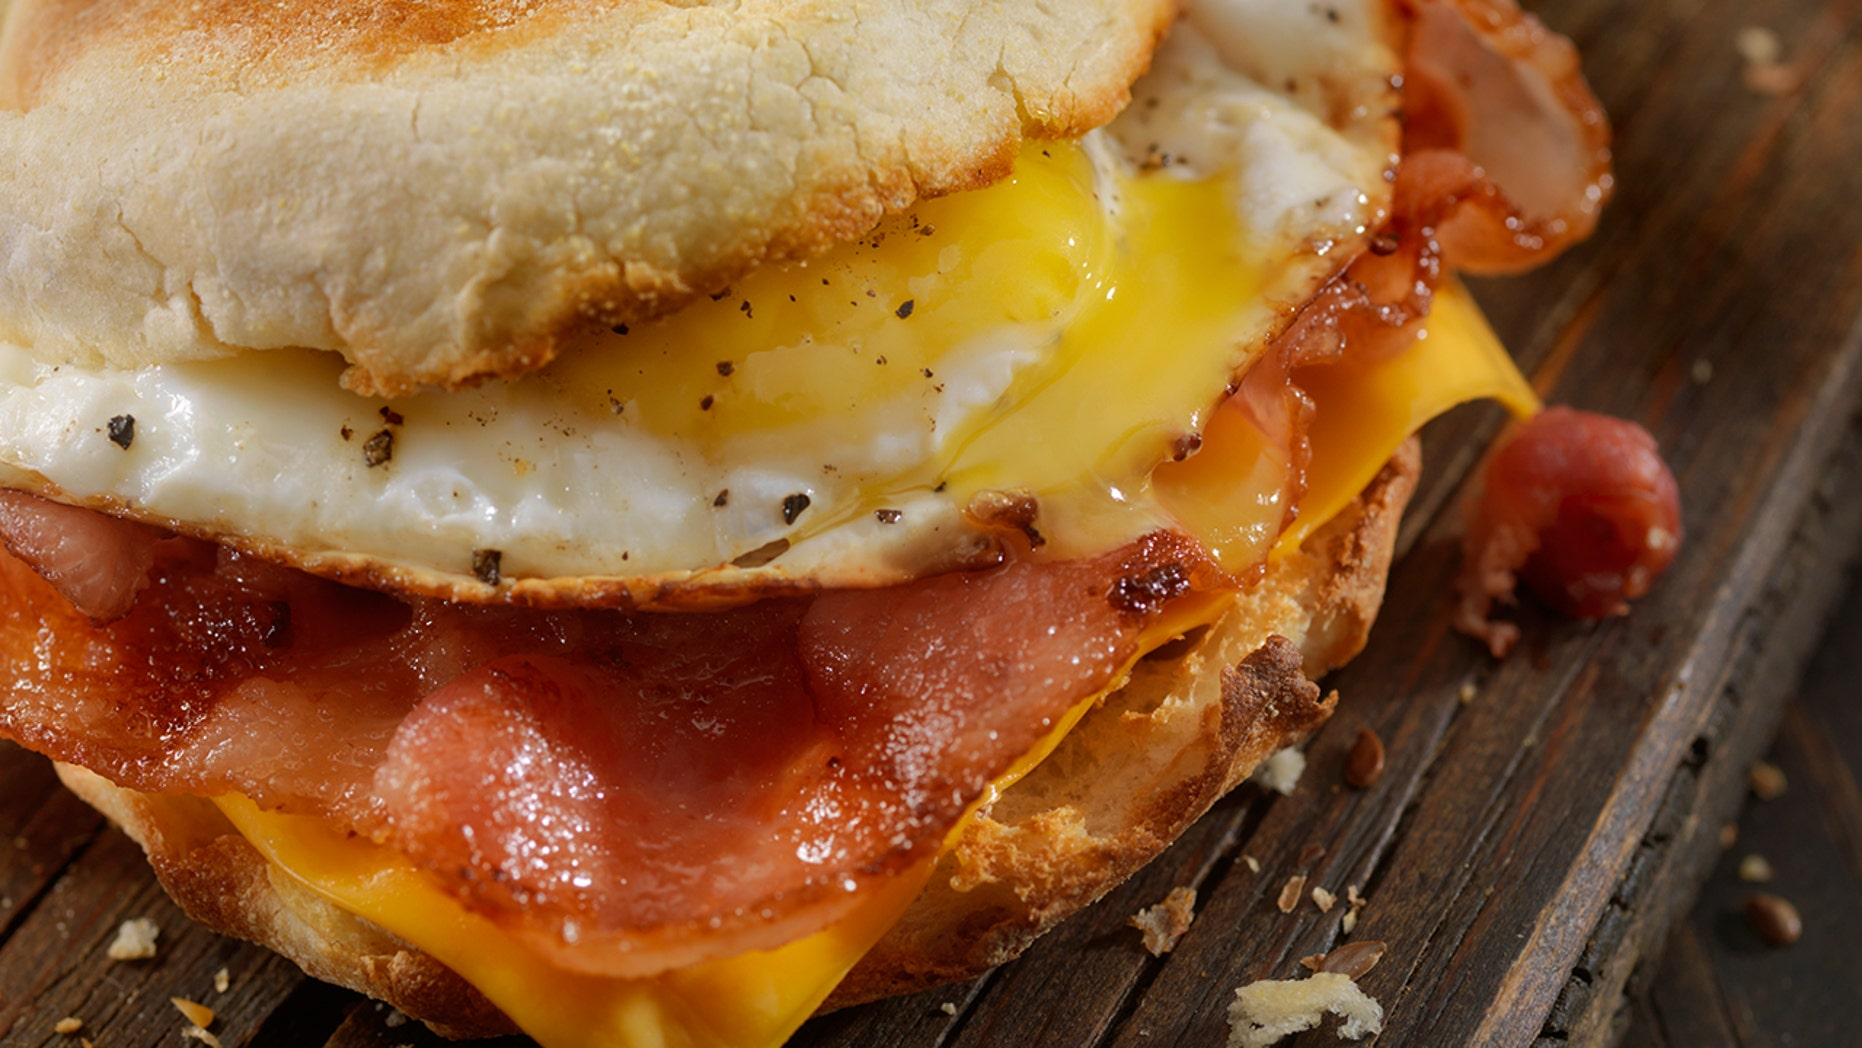 A plane passenger got into an argument with crew members when he found out he couldn't get a bacon sandwich.